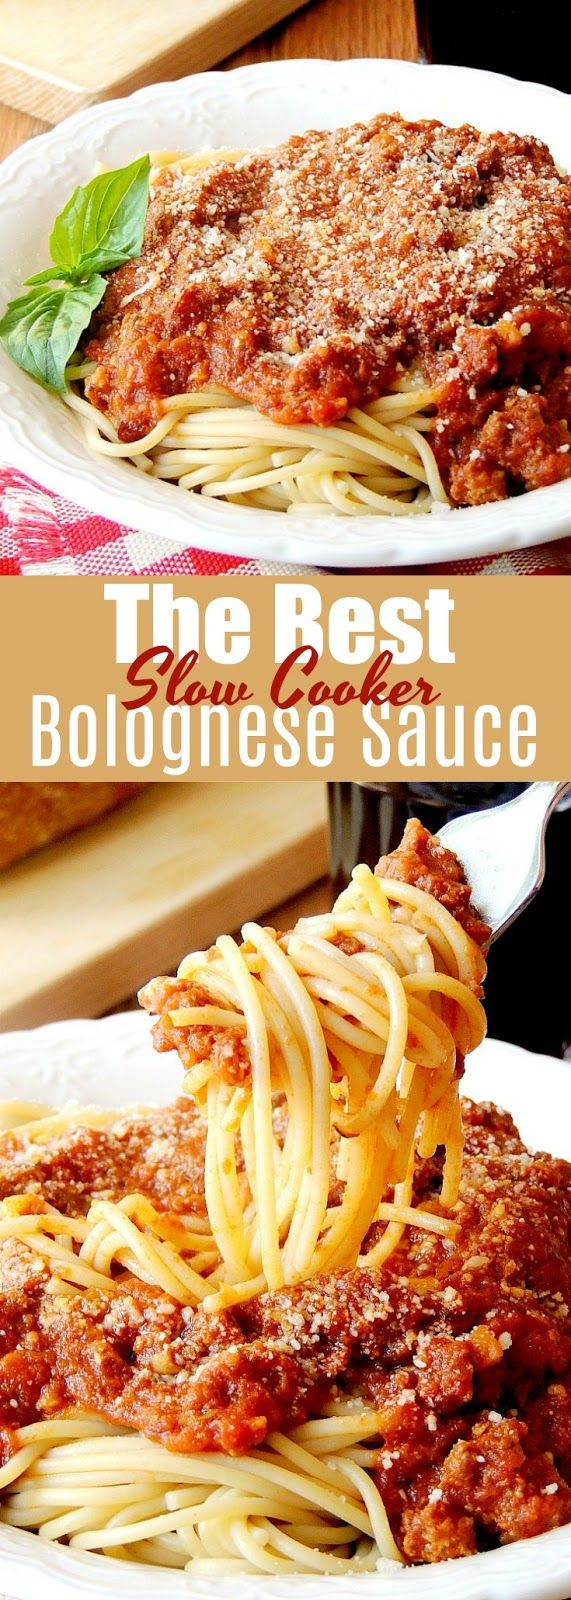 The Best Slow Cooker Bolognese Sauce - This bolognese sauce is so easy it is ridiculous! You let your slow cooker do all the work so you don't have to hover over a stove all day to enjoy this rich velvety pasta sauce. From www.bobbiskozykitchen.com